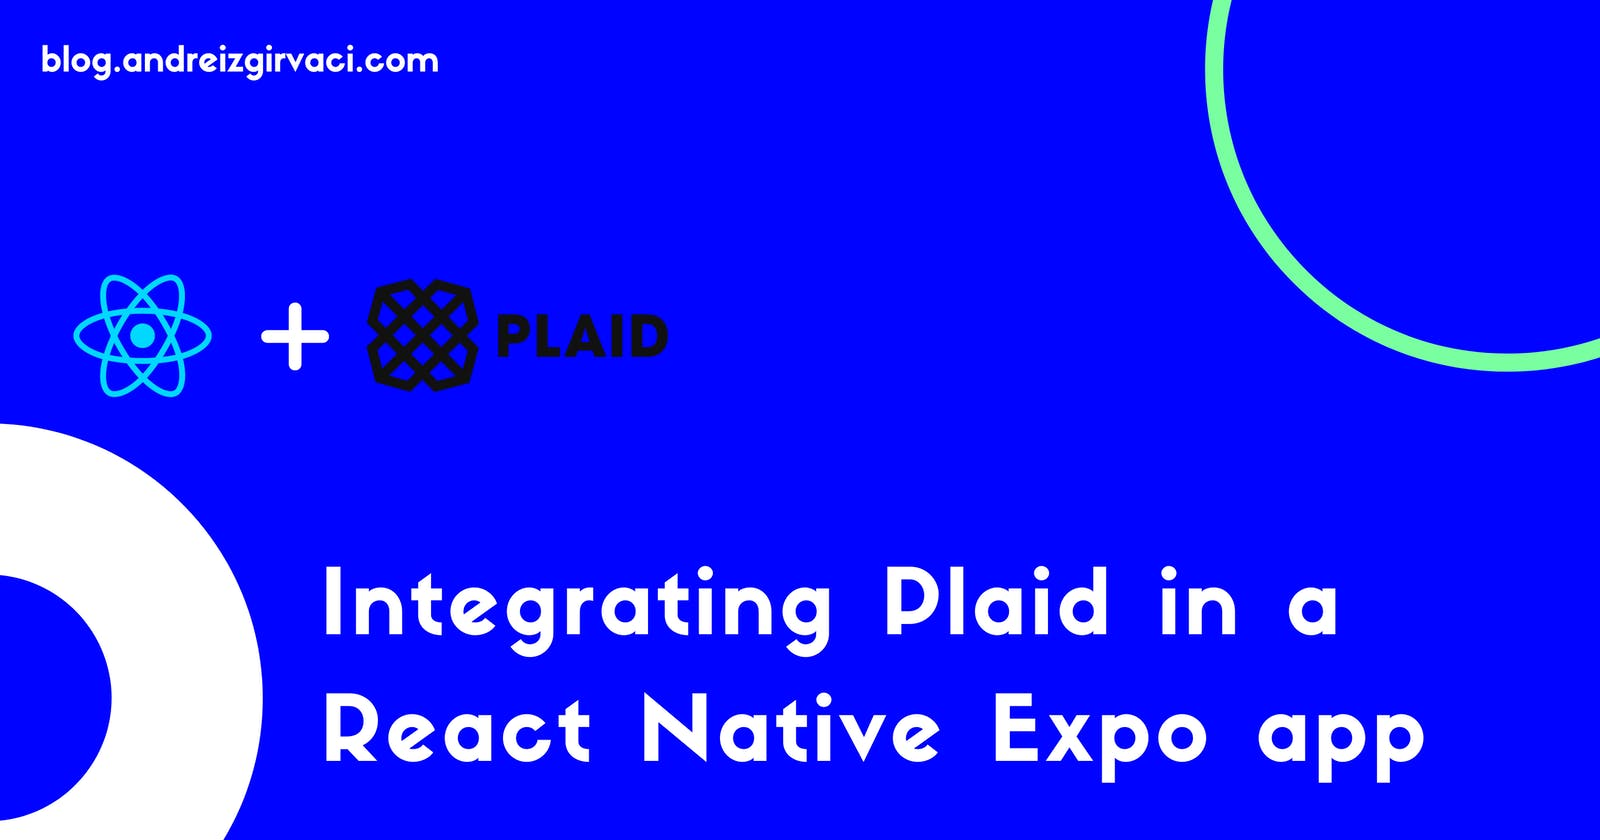 Integrating Plaid in a React Native Expo app